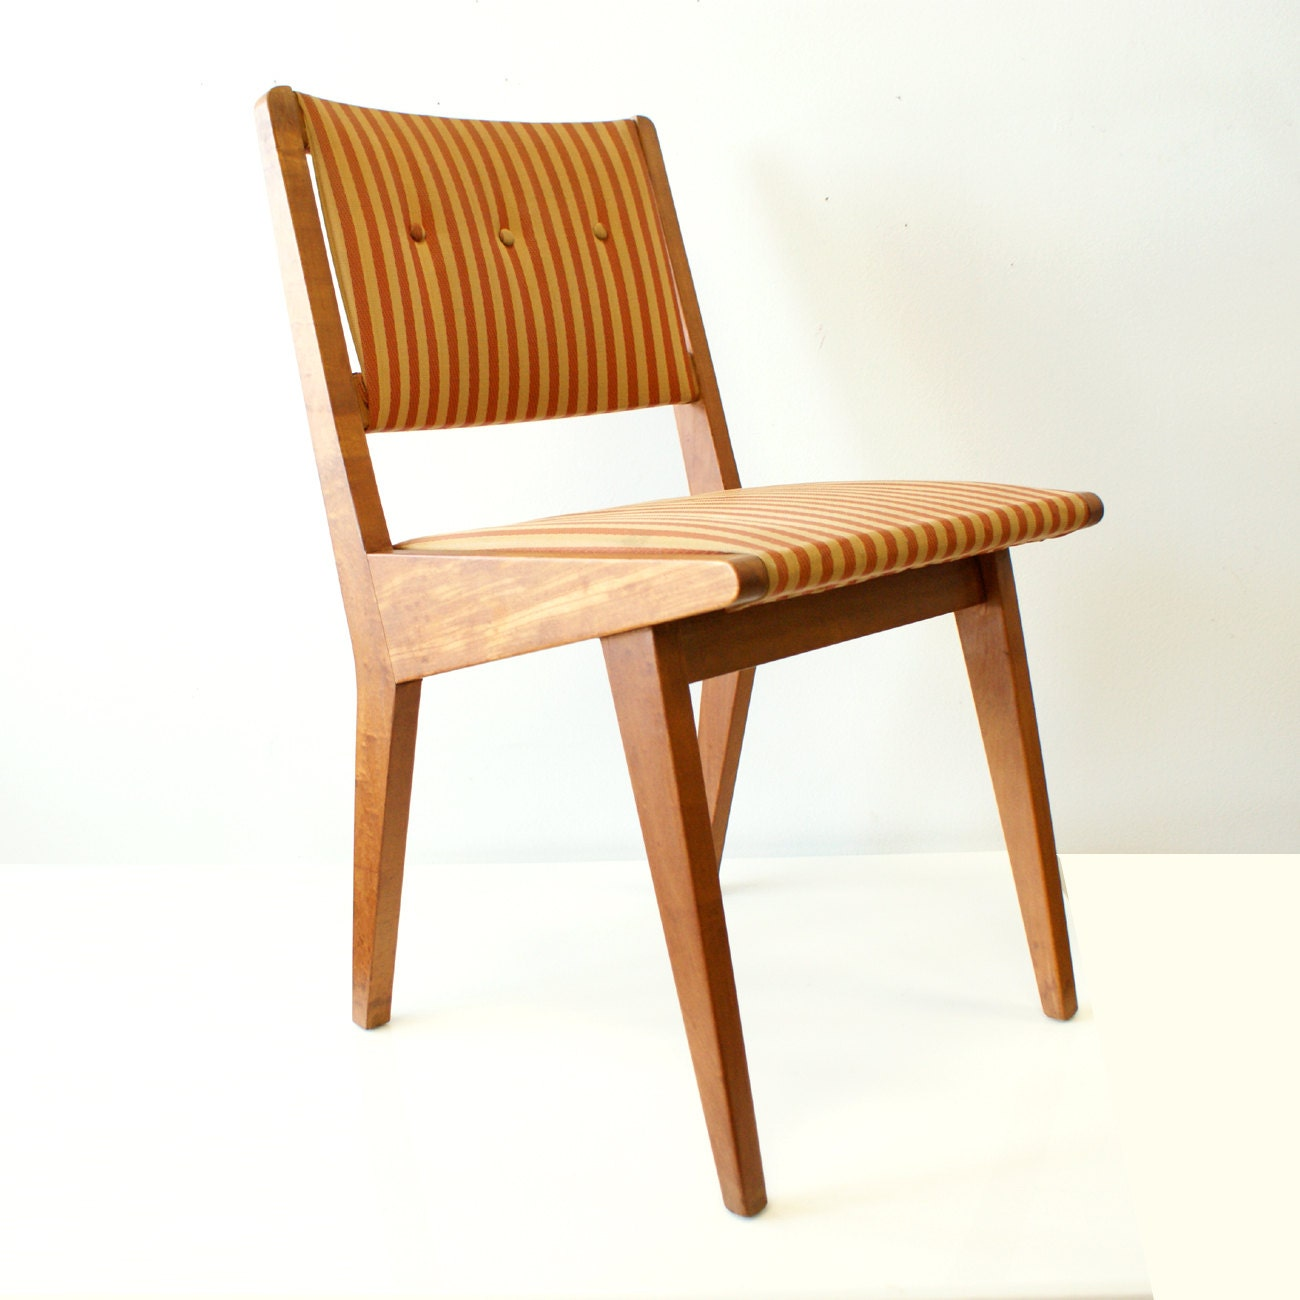 Jens risom chair with early knoll associates label mid for Knoll and associates